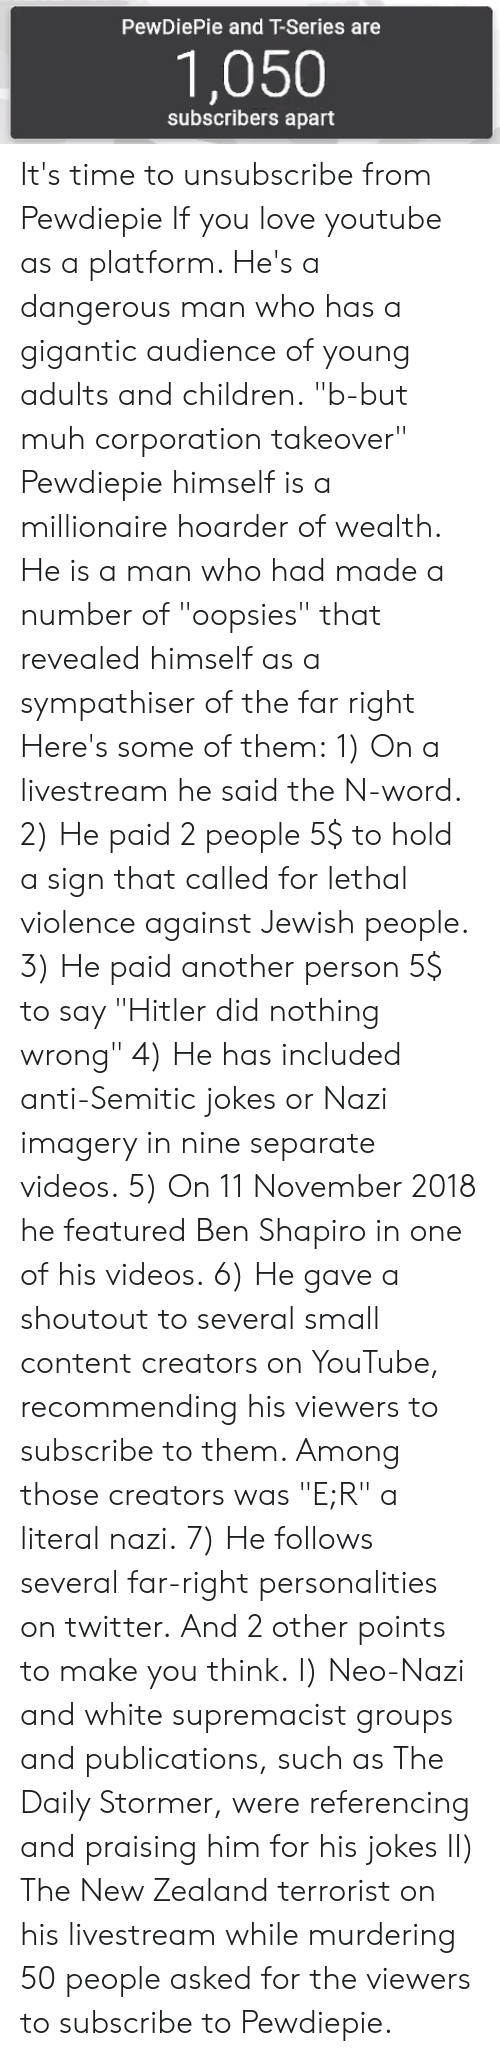 """Anti Semitic Jokes: PewDiePie and T-Series are  1,050  subscribers apart It's time to unsubscribe from Pewdiepie If you love youtube as a platform. He's a dangerous man who has a gigantic audience of young adults and children. """"b-but muh corporation takeover"""" Pewdiepie himself is a millionaire hoarder of wealth. He is a man who had made a number of """"oopsies"""" that revealed himself as a sympathiser of the far right Here's some of them: 1) On a livestream he said the N-word. 2) He paid 2 people 5$ to hold a sign that called for lethal violence against Jewish people. 3) He paid another person 5$ to say """"Hitler did nothing wrong"""" 4) He has included anti-Semitic jokes or Nazi imagery in nine separate videos. 5) On 11 November 2018 he featured Ben Shapiro in one of his videos. 6) He gave a shoutout to several small content creators on YouTube, recommending his viewers to subscribe to them. Among those creators was """"E;R"""" a literal nazi. 7) He follows several far-right personalities on twitter.  And 2 other points to make you think. I) Neo-Nazi and white supremacist groups and publications, such as The Daily Stormer, were referencing and praising him for his jokes II) The New Zealand terrorist on his livestream while murdering 50 people asked for the viewers to subscribe to Pewdiepie."""